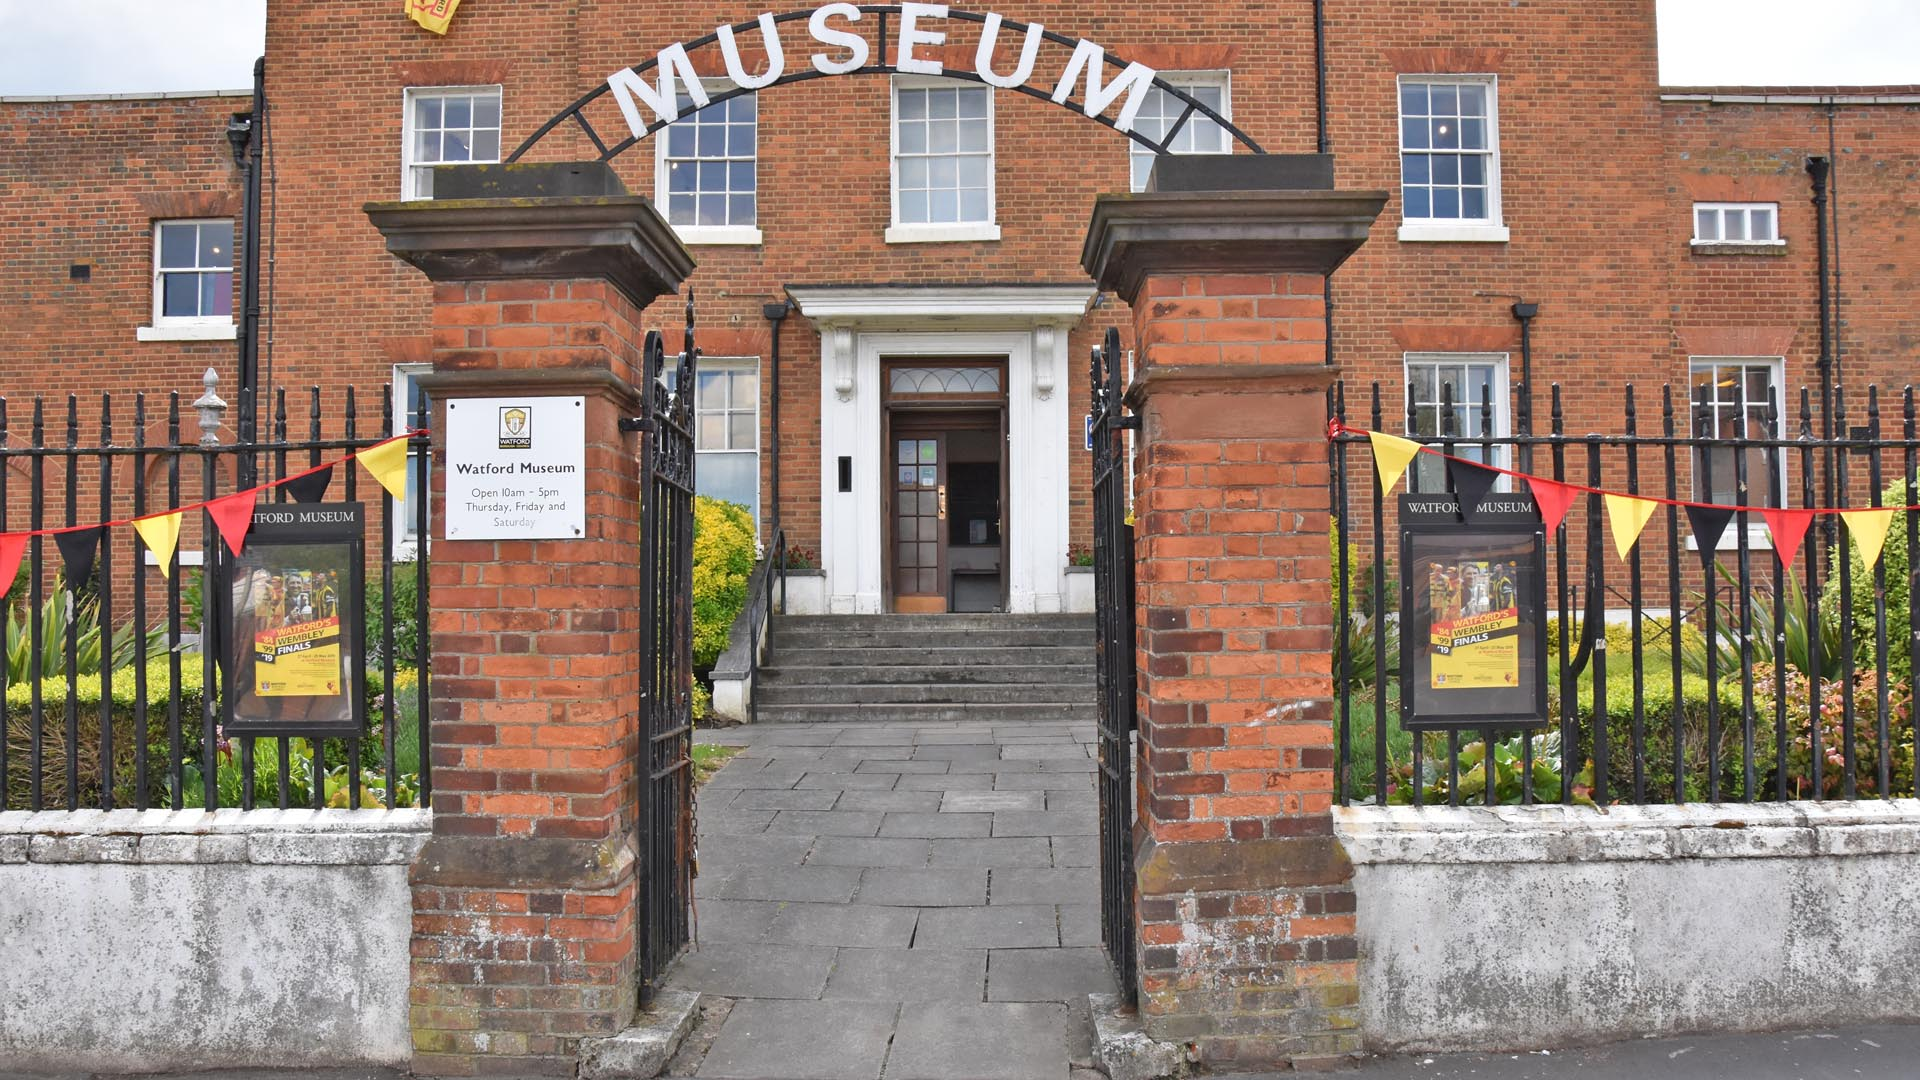 Watford Museum is preparing to welcome visitors back for the first time this weekend on Saturday 1 August since it had to close its doors due to COVID-19